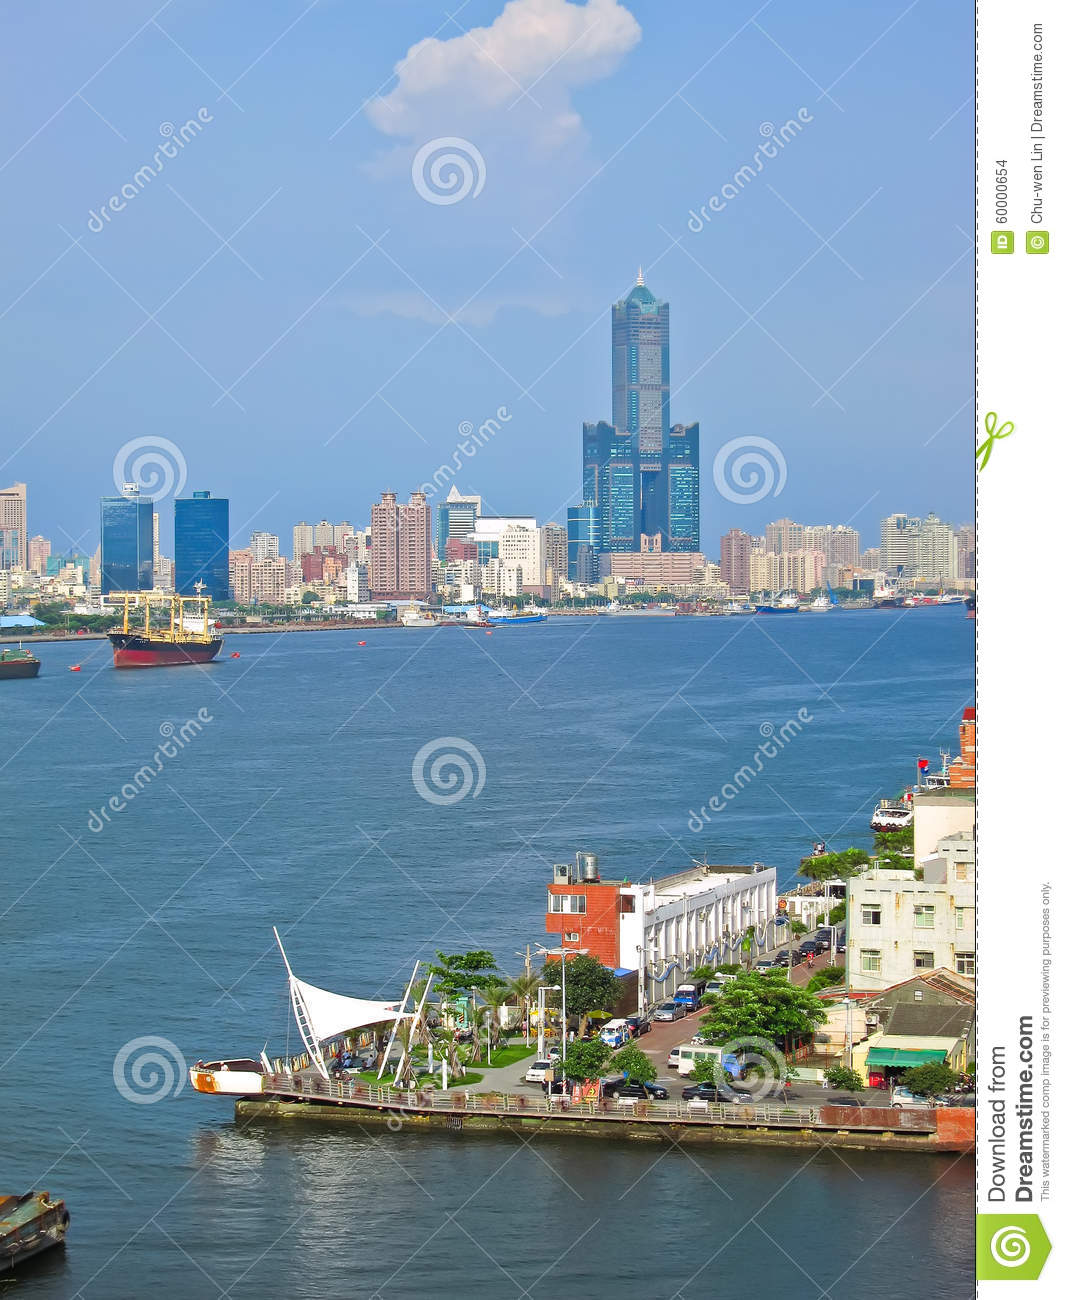 View of Kaohsiung Harbor